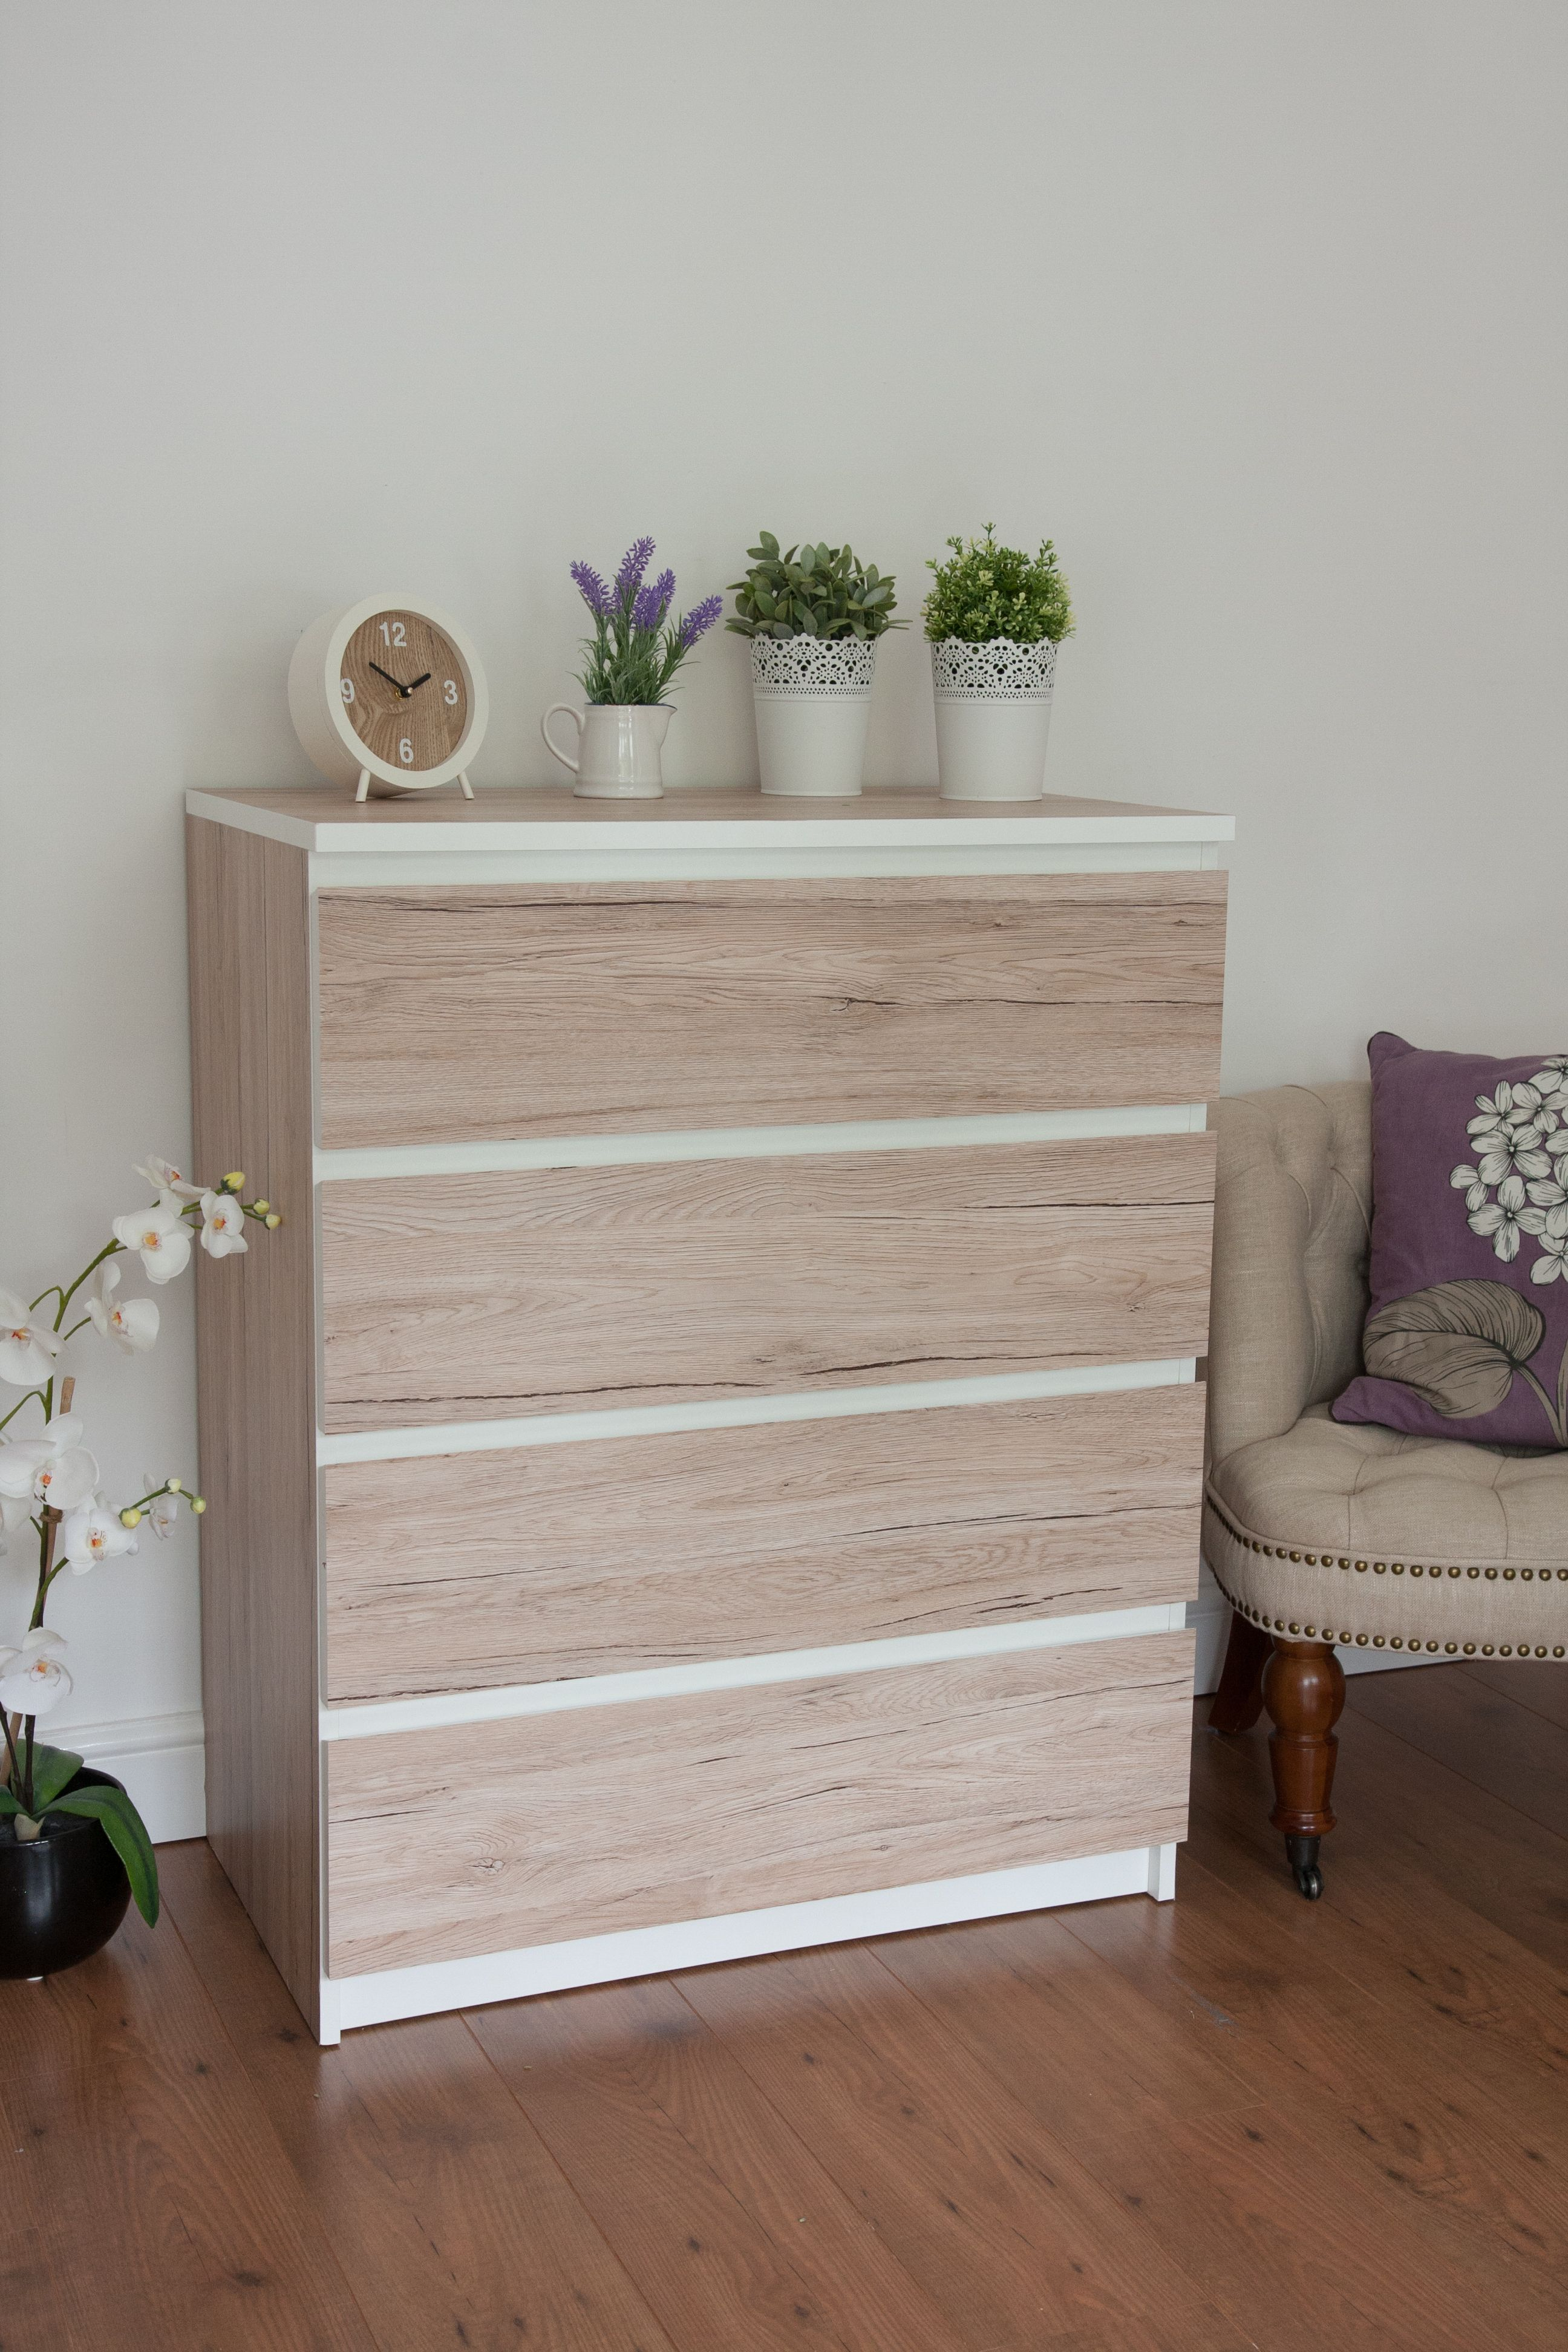 D C Fix® Sanremo Sand Self Adhesive Film Used To Update An Old Ikea Chest